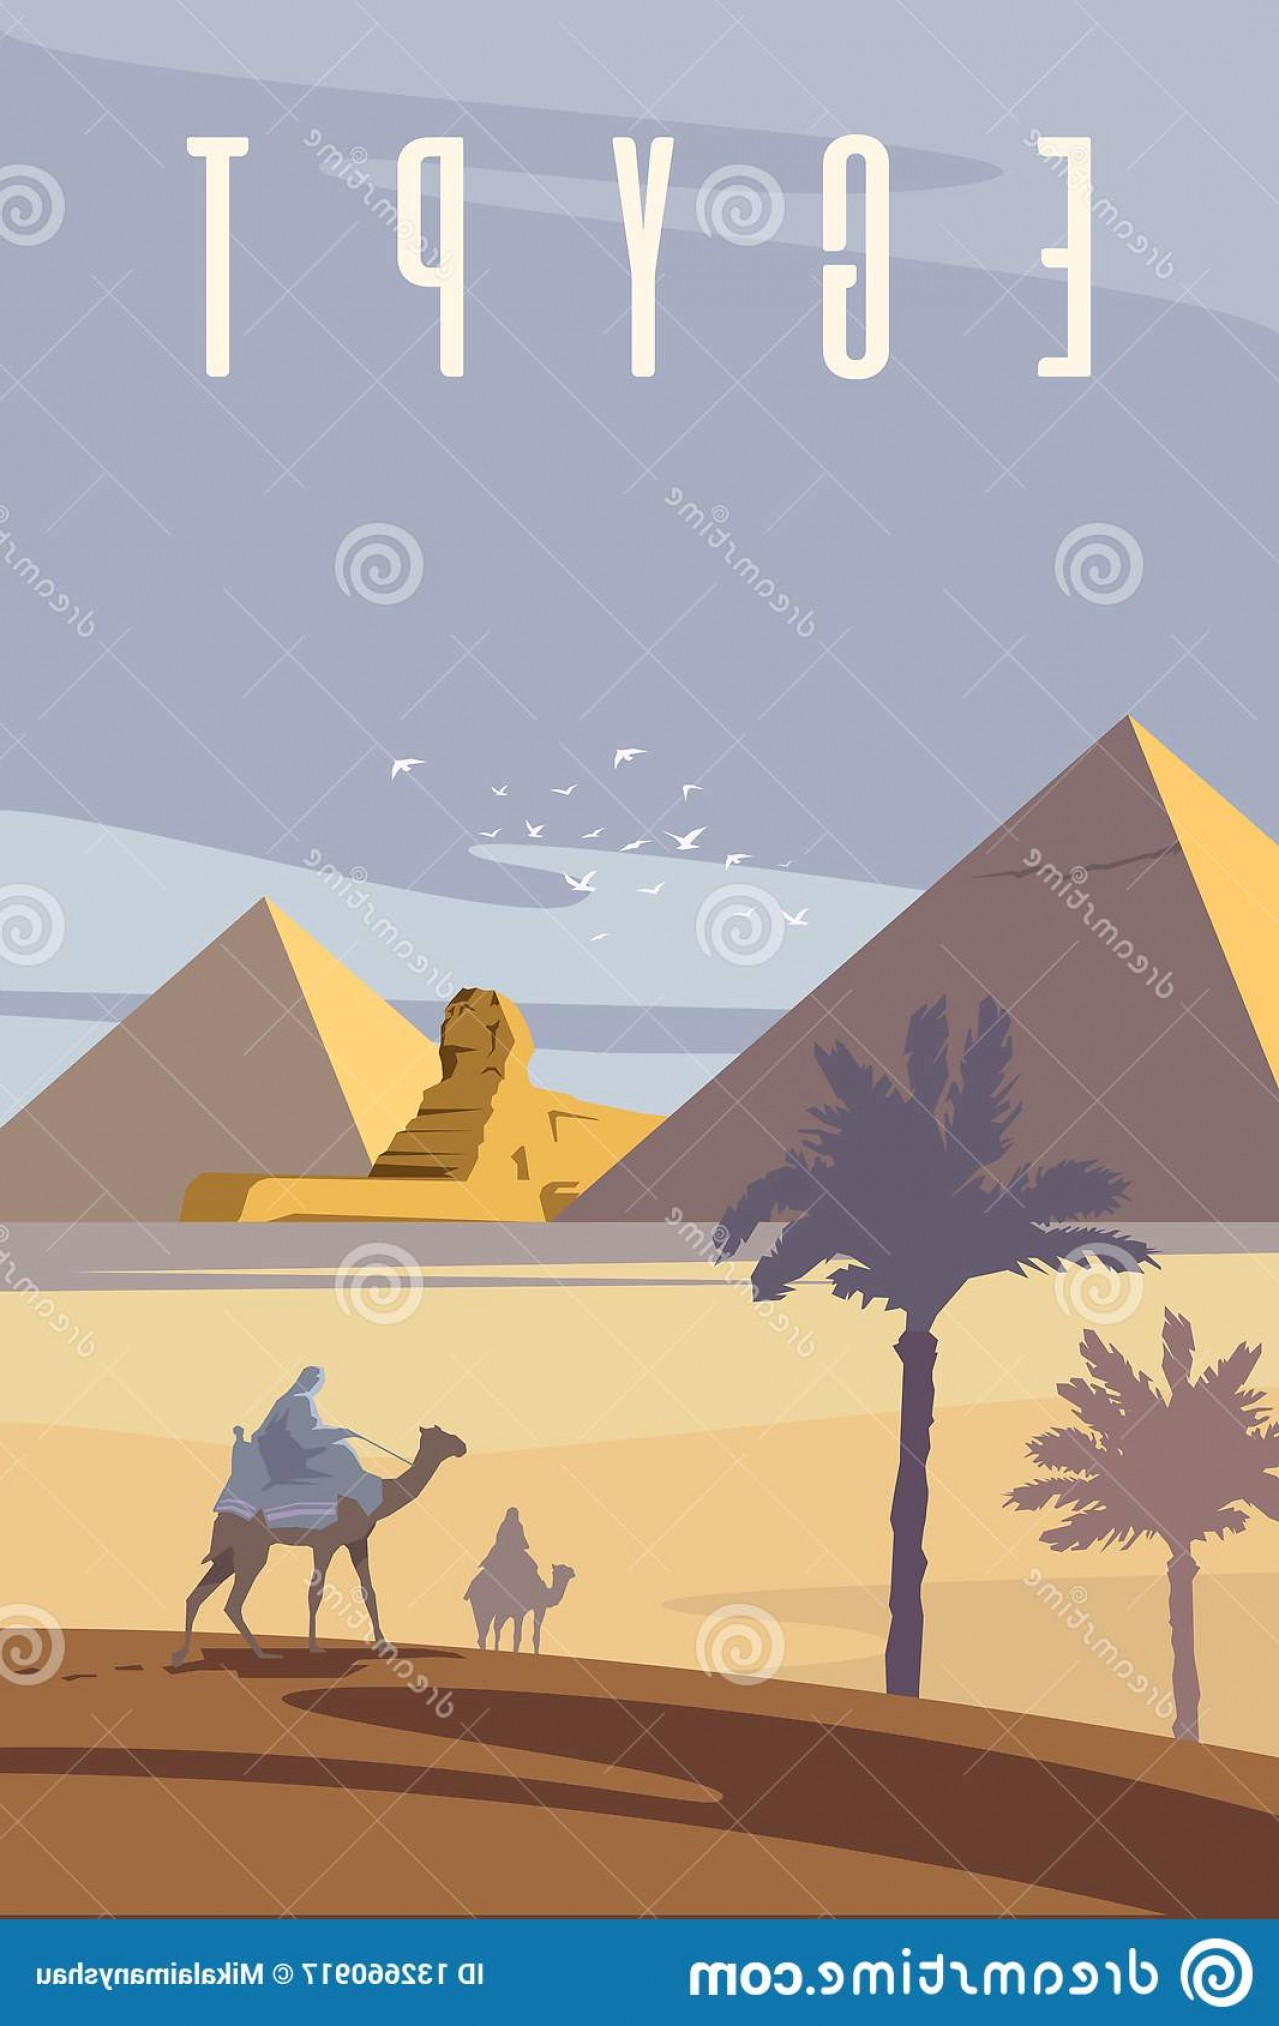 Piramids Vector Art: Vector Art Deco Retro Poster Egyptian Pyramids Sahara Desert Two Men Riding Camels Image